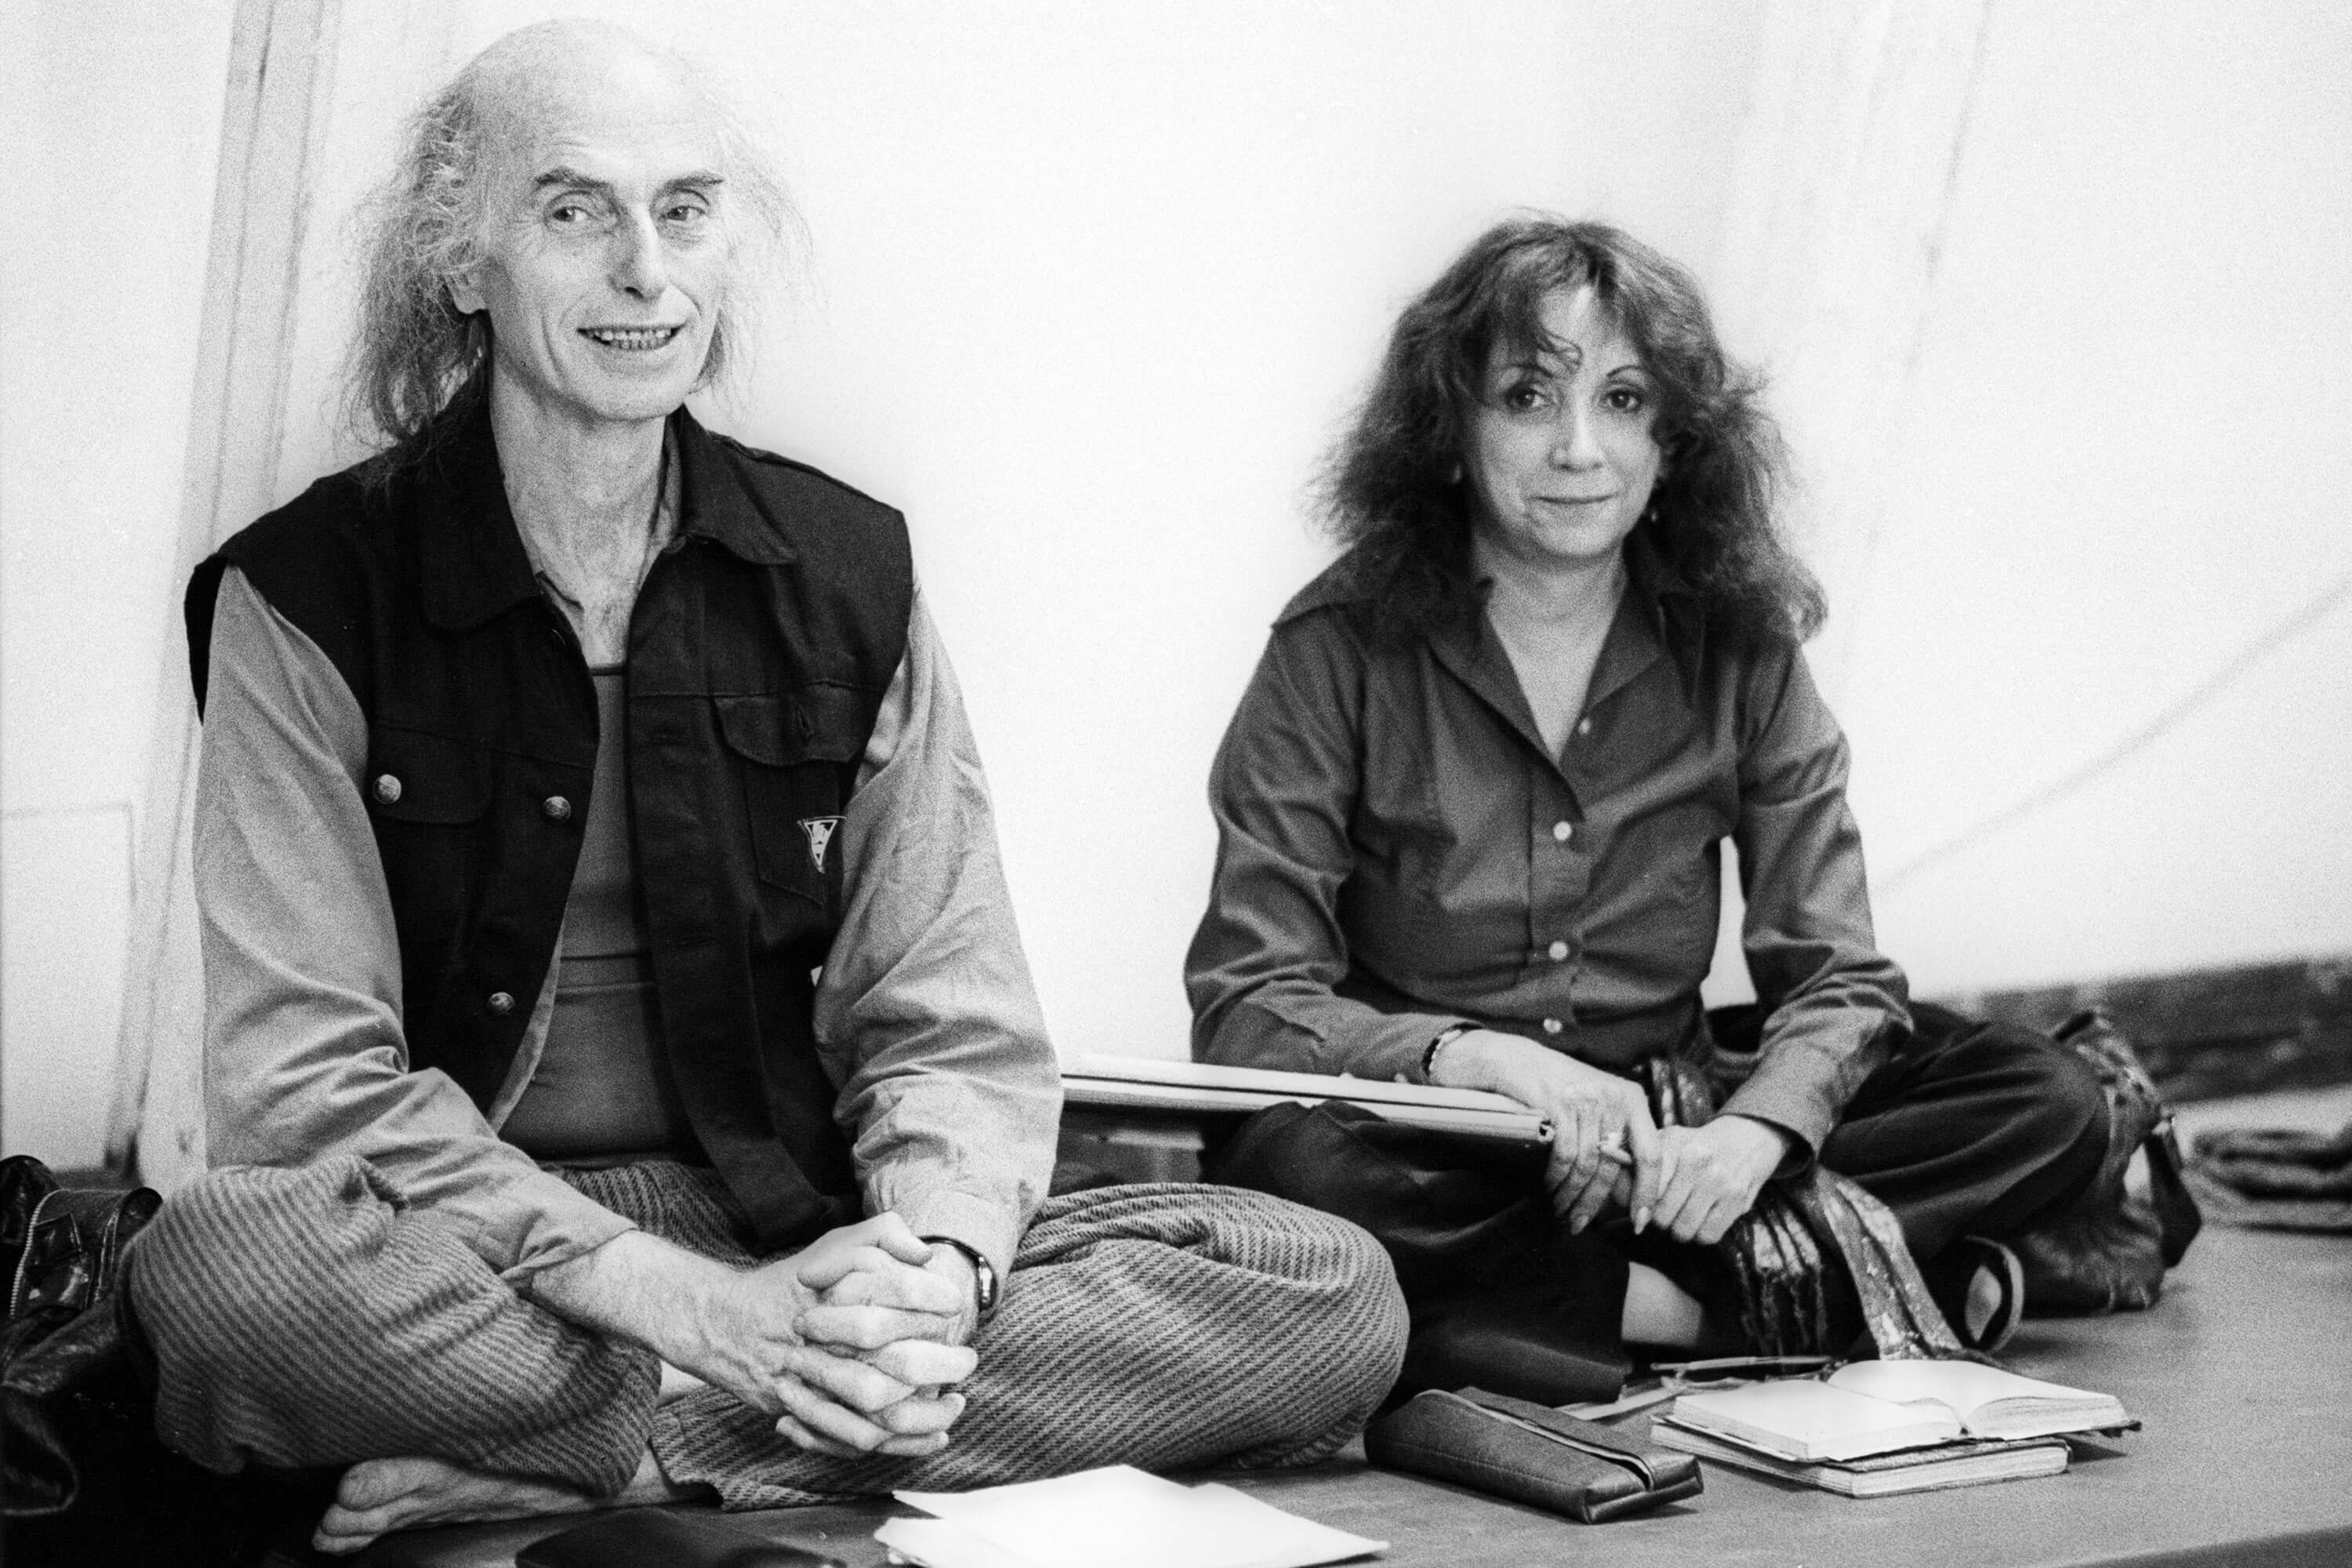 Julian Beck and Judith Malina are sitting next to each other cross-legged.